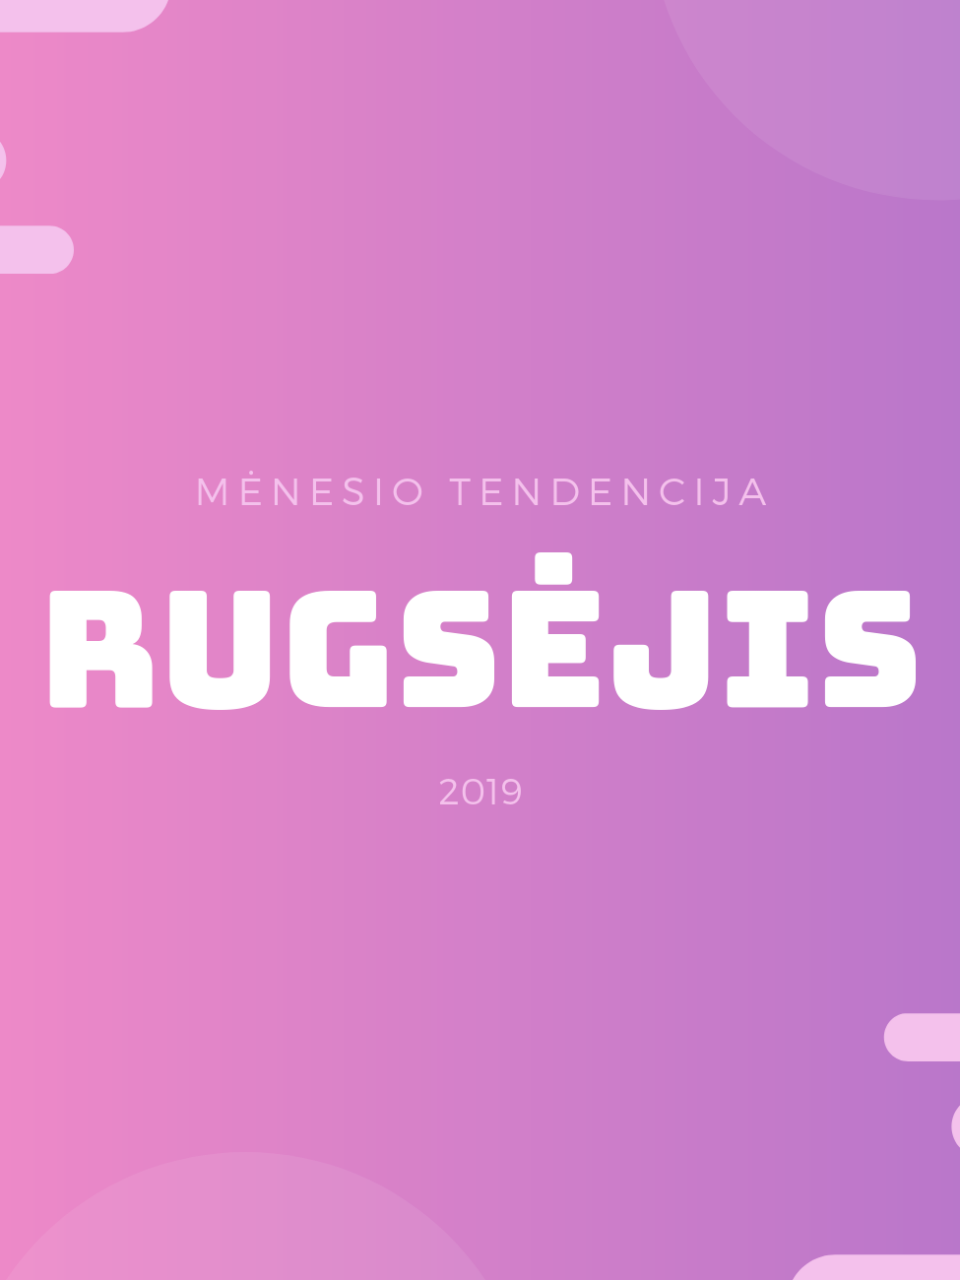 http://zachh.lt/wp-content/uploads/2019/09/2019rugsejis-960x1280.png